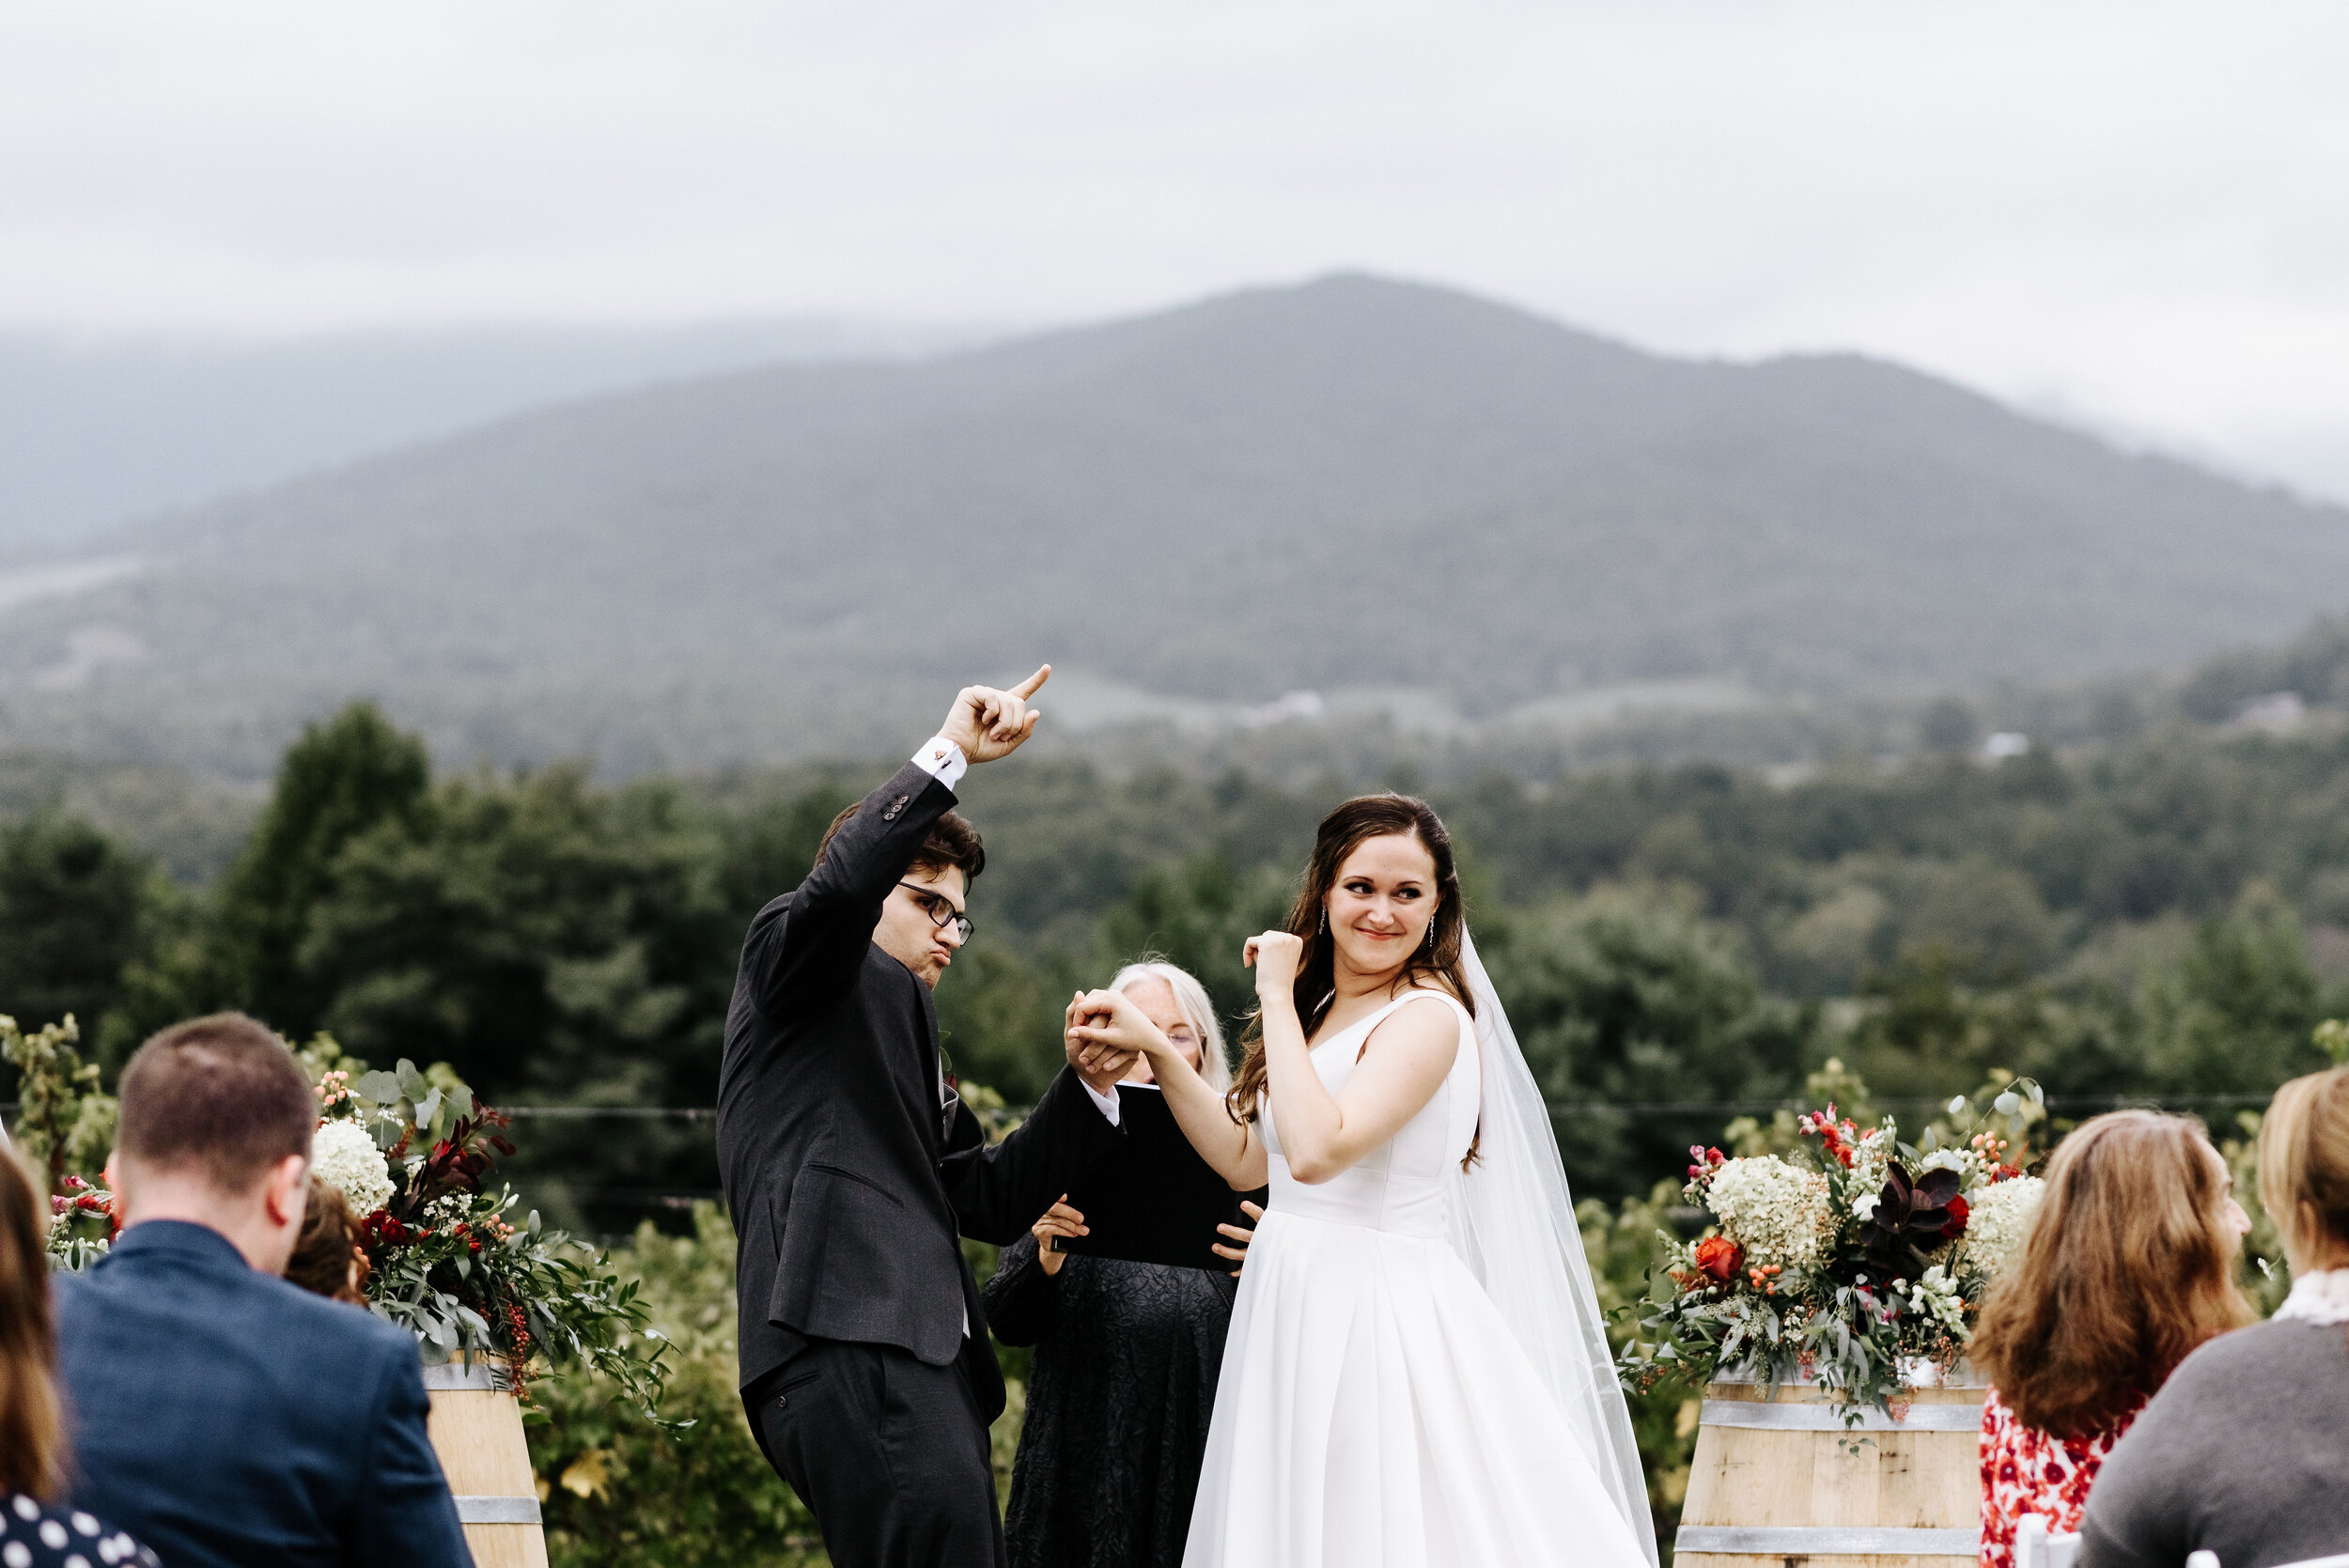 Allison_Nolan_Moss_Vineyards_Wedding_Charlottesville_Virginia_Photography_by_V_45.jpg